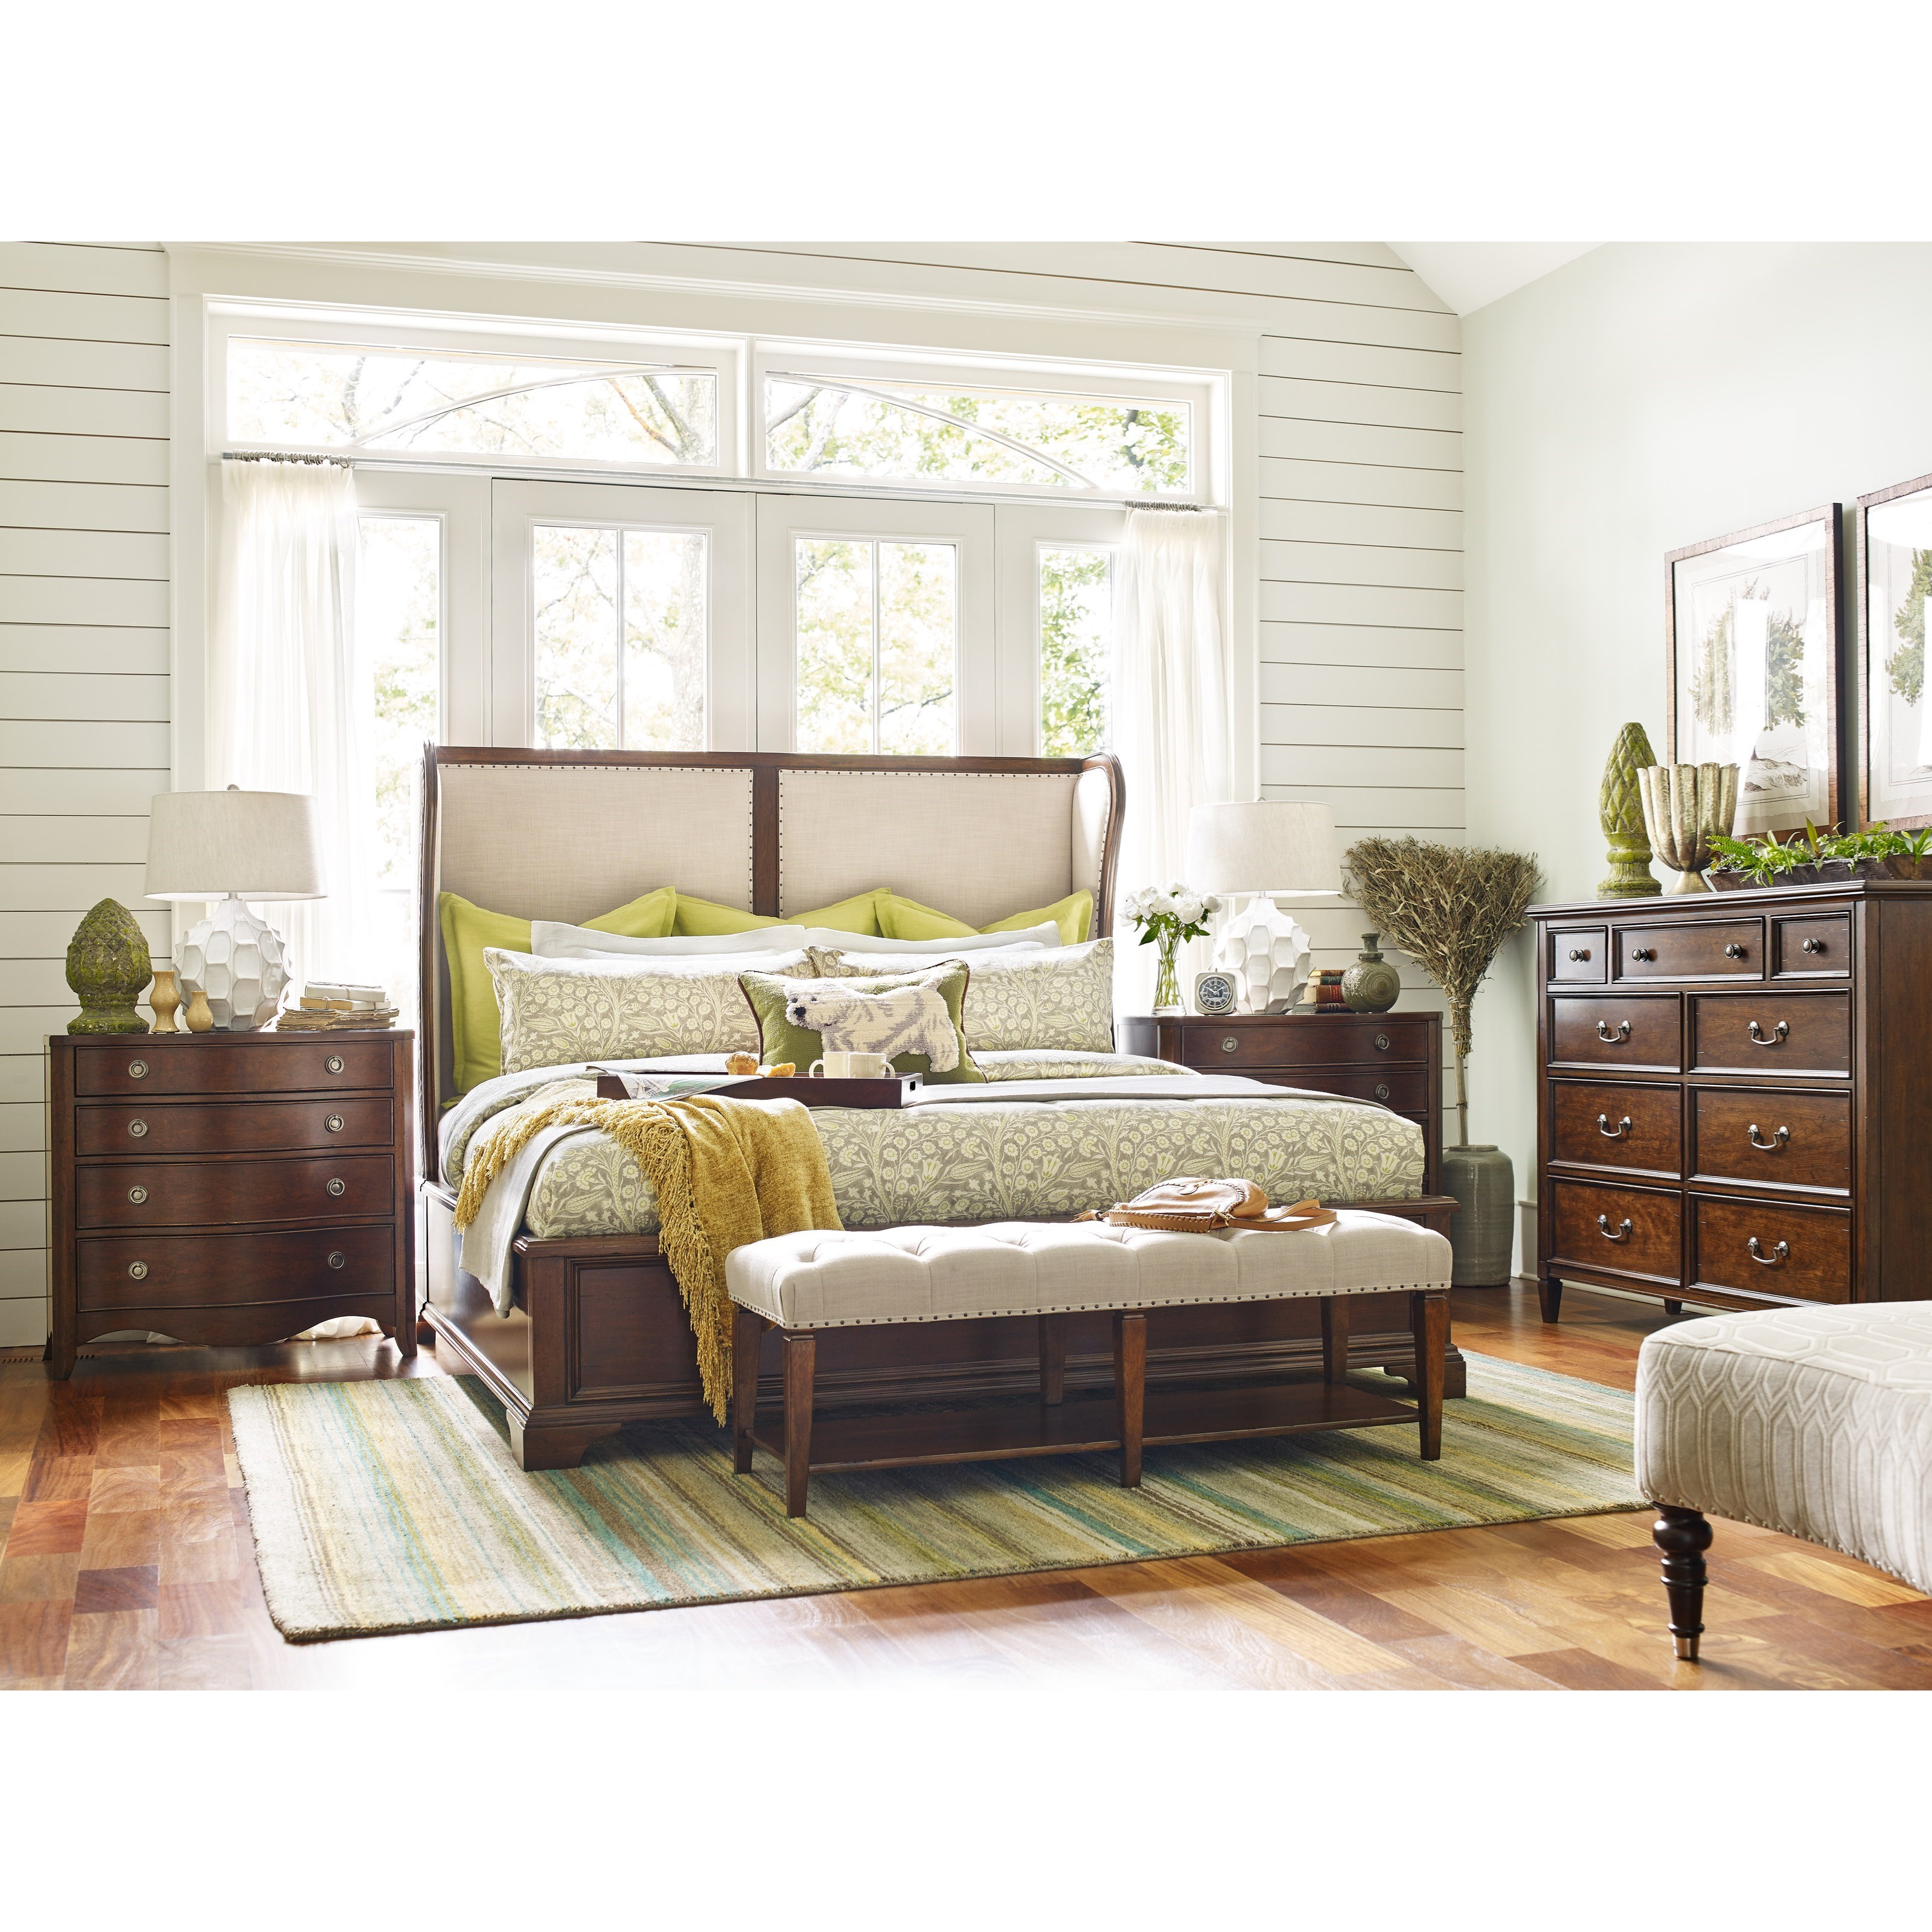 Rachael Ray Home by Legacy Classic Upstate California King Bedroom Group - Item Number: 6040 CK Bedroom Group 2